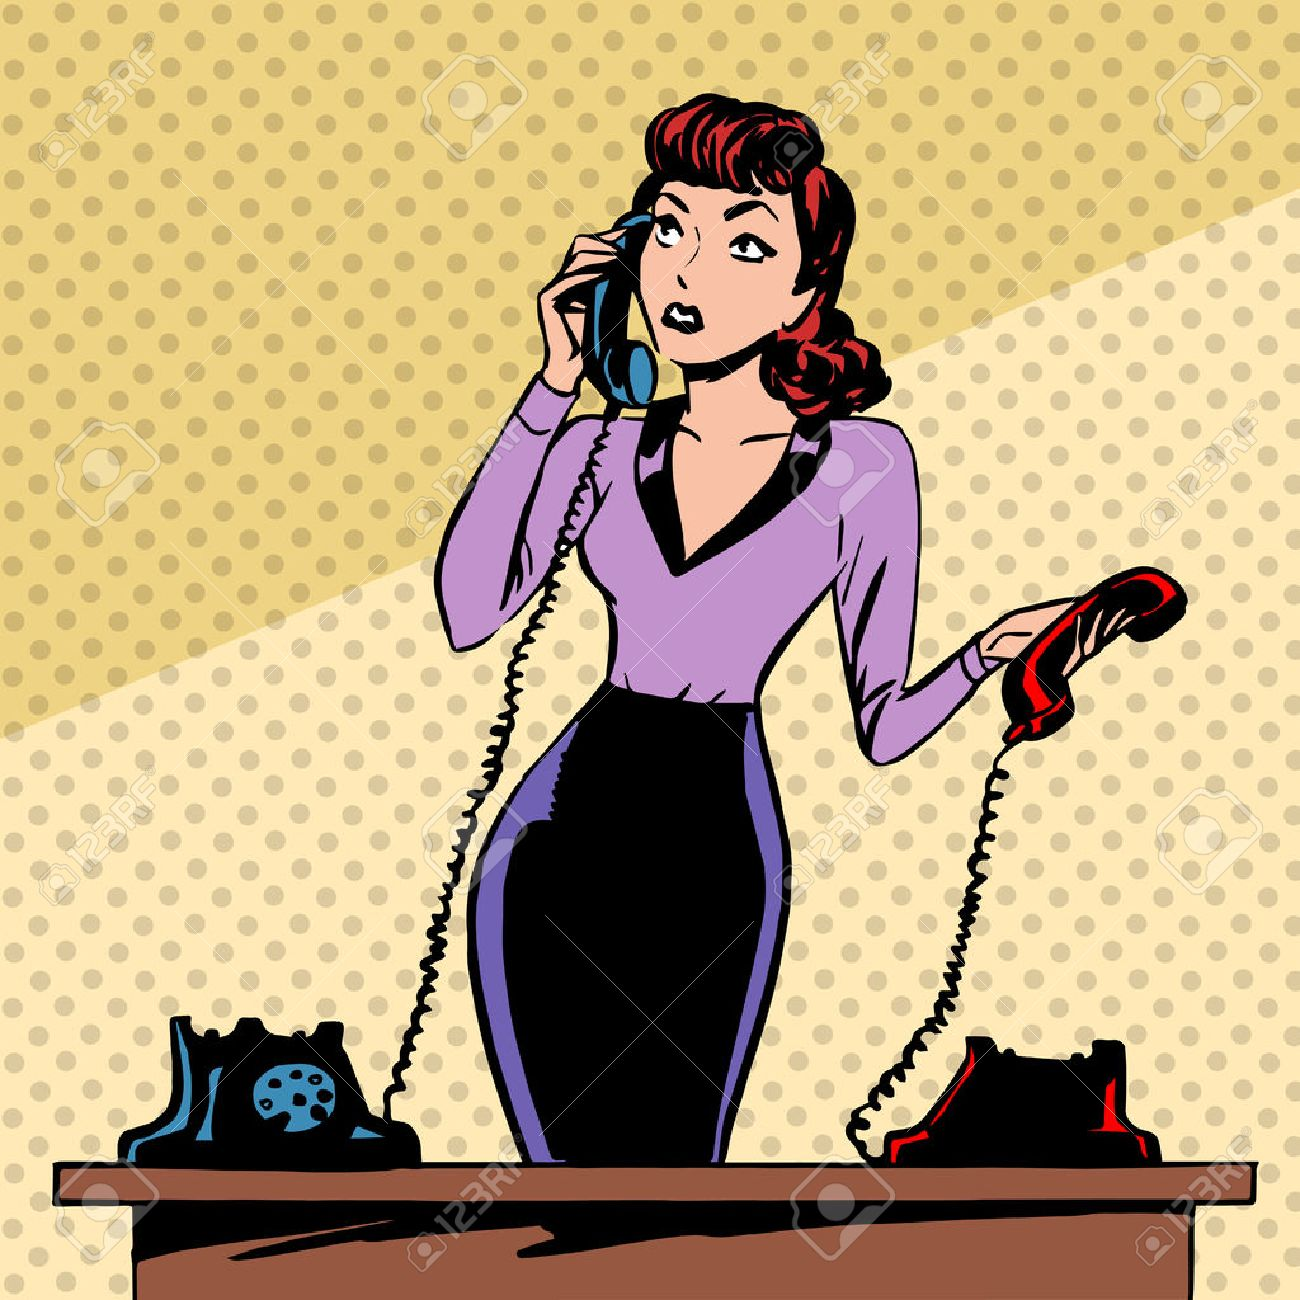 Girl Secretary answers the phone progress and communication technology pop art comics retro style Halftone. Imitation of old illustrations. The old woman lifts the handset and communicates with them - 38422541